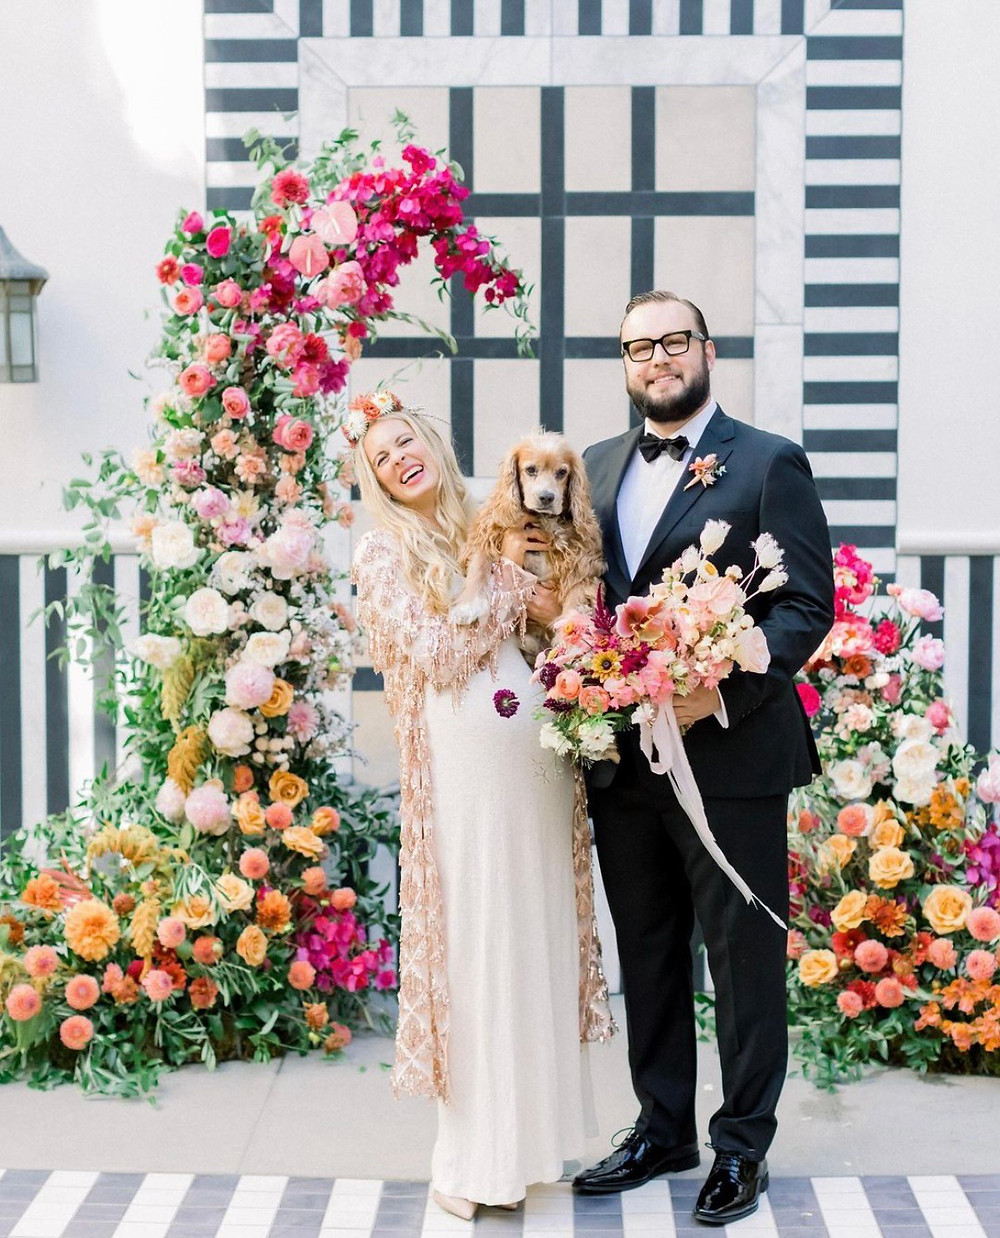 A newly-wed couple holding their dog while stood in front of a flower arch